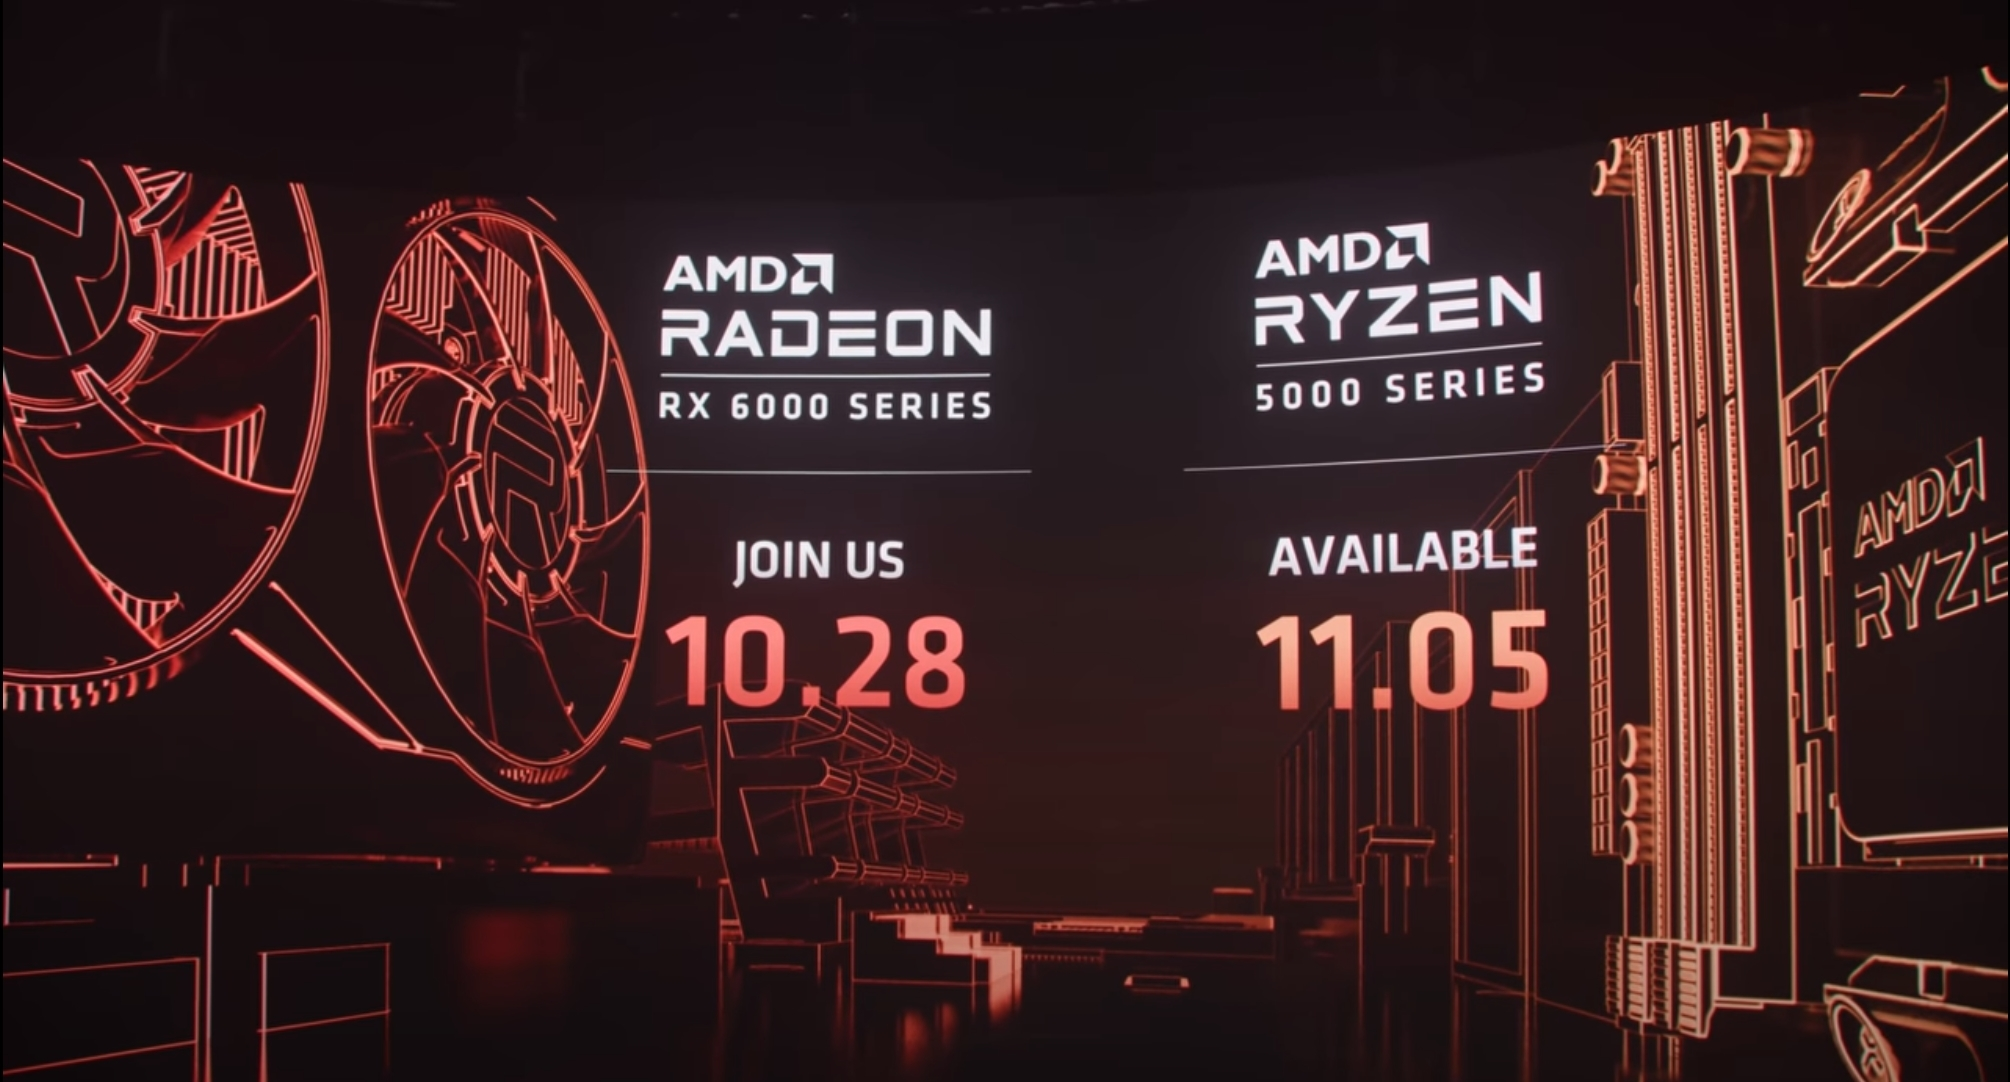 Will AMD's Safeguards Be Enough To Stop Scalpers And Bots From Taking Their Radeon RX 6000 GPU At Release?